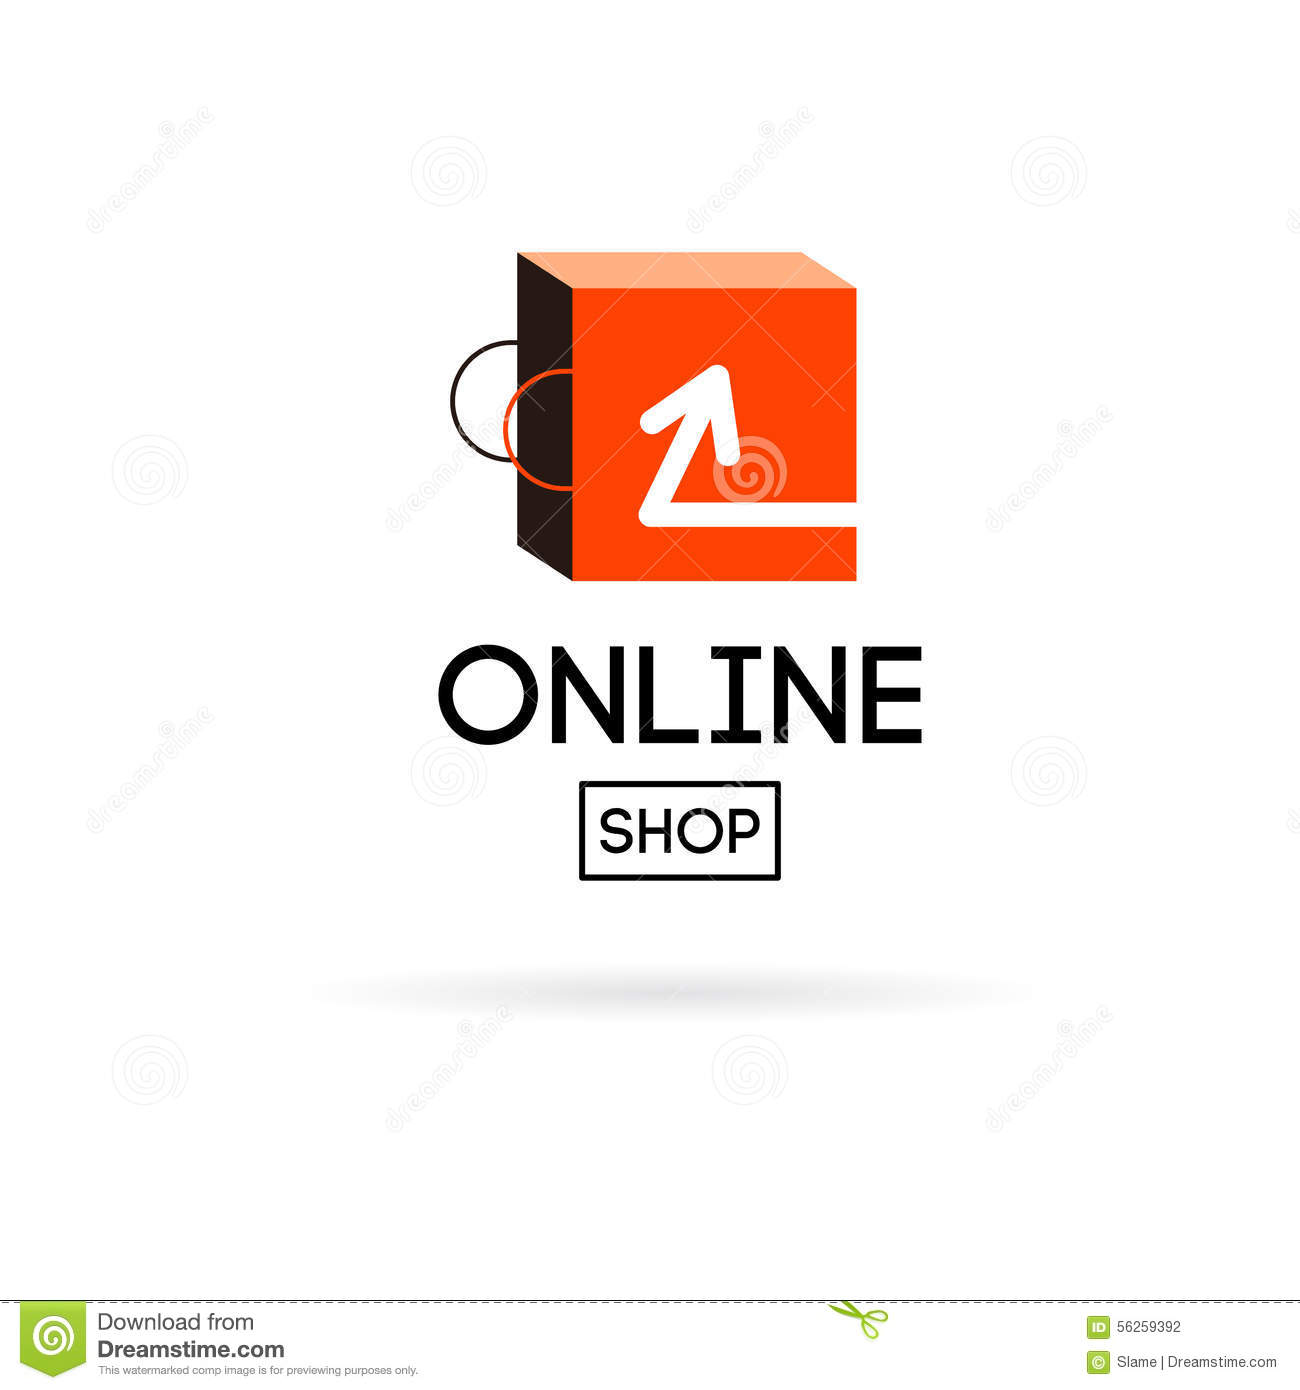 Shop online logo images galleries for Make a blueprint free online